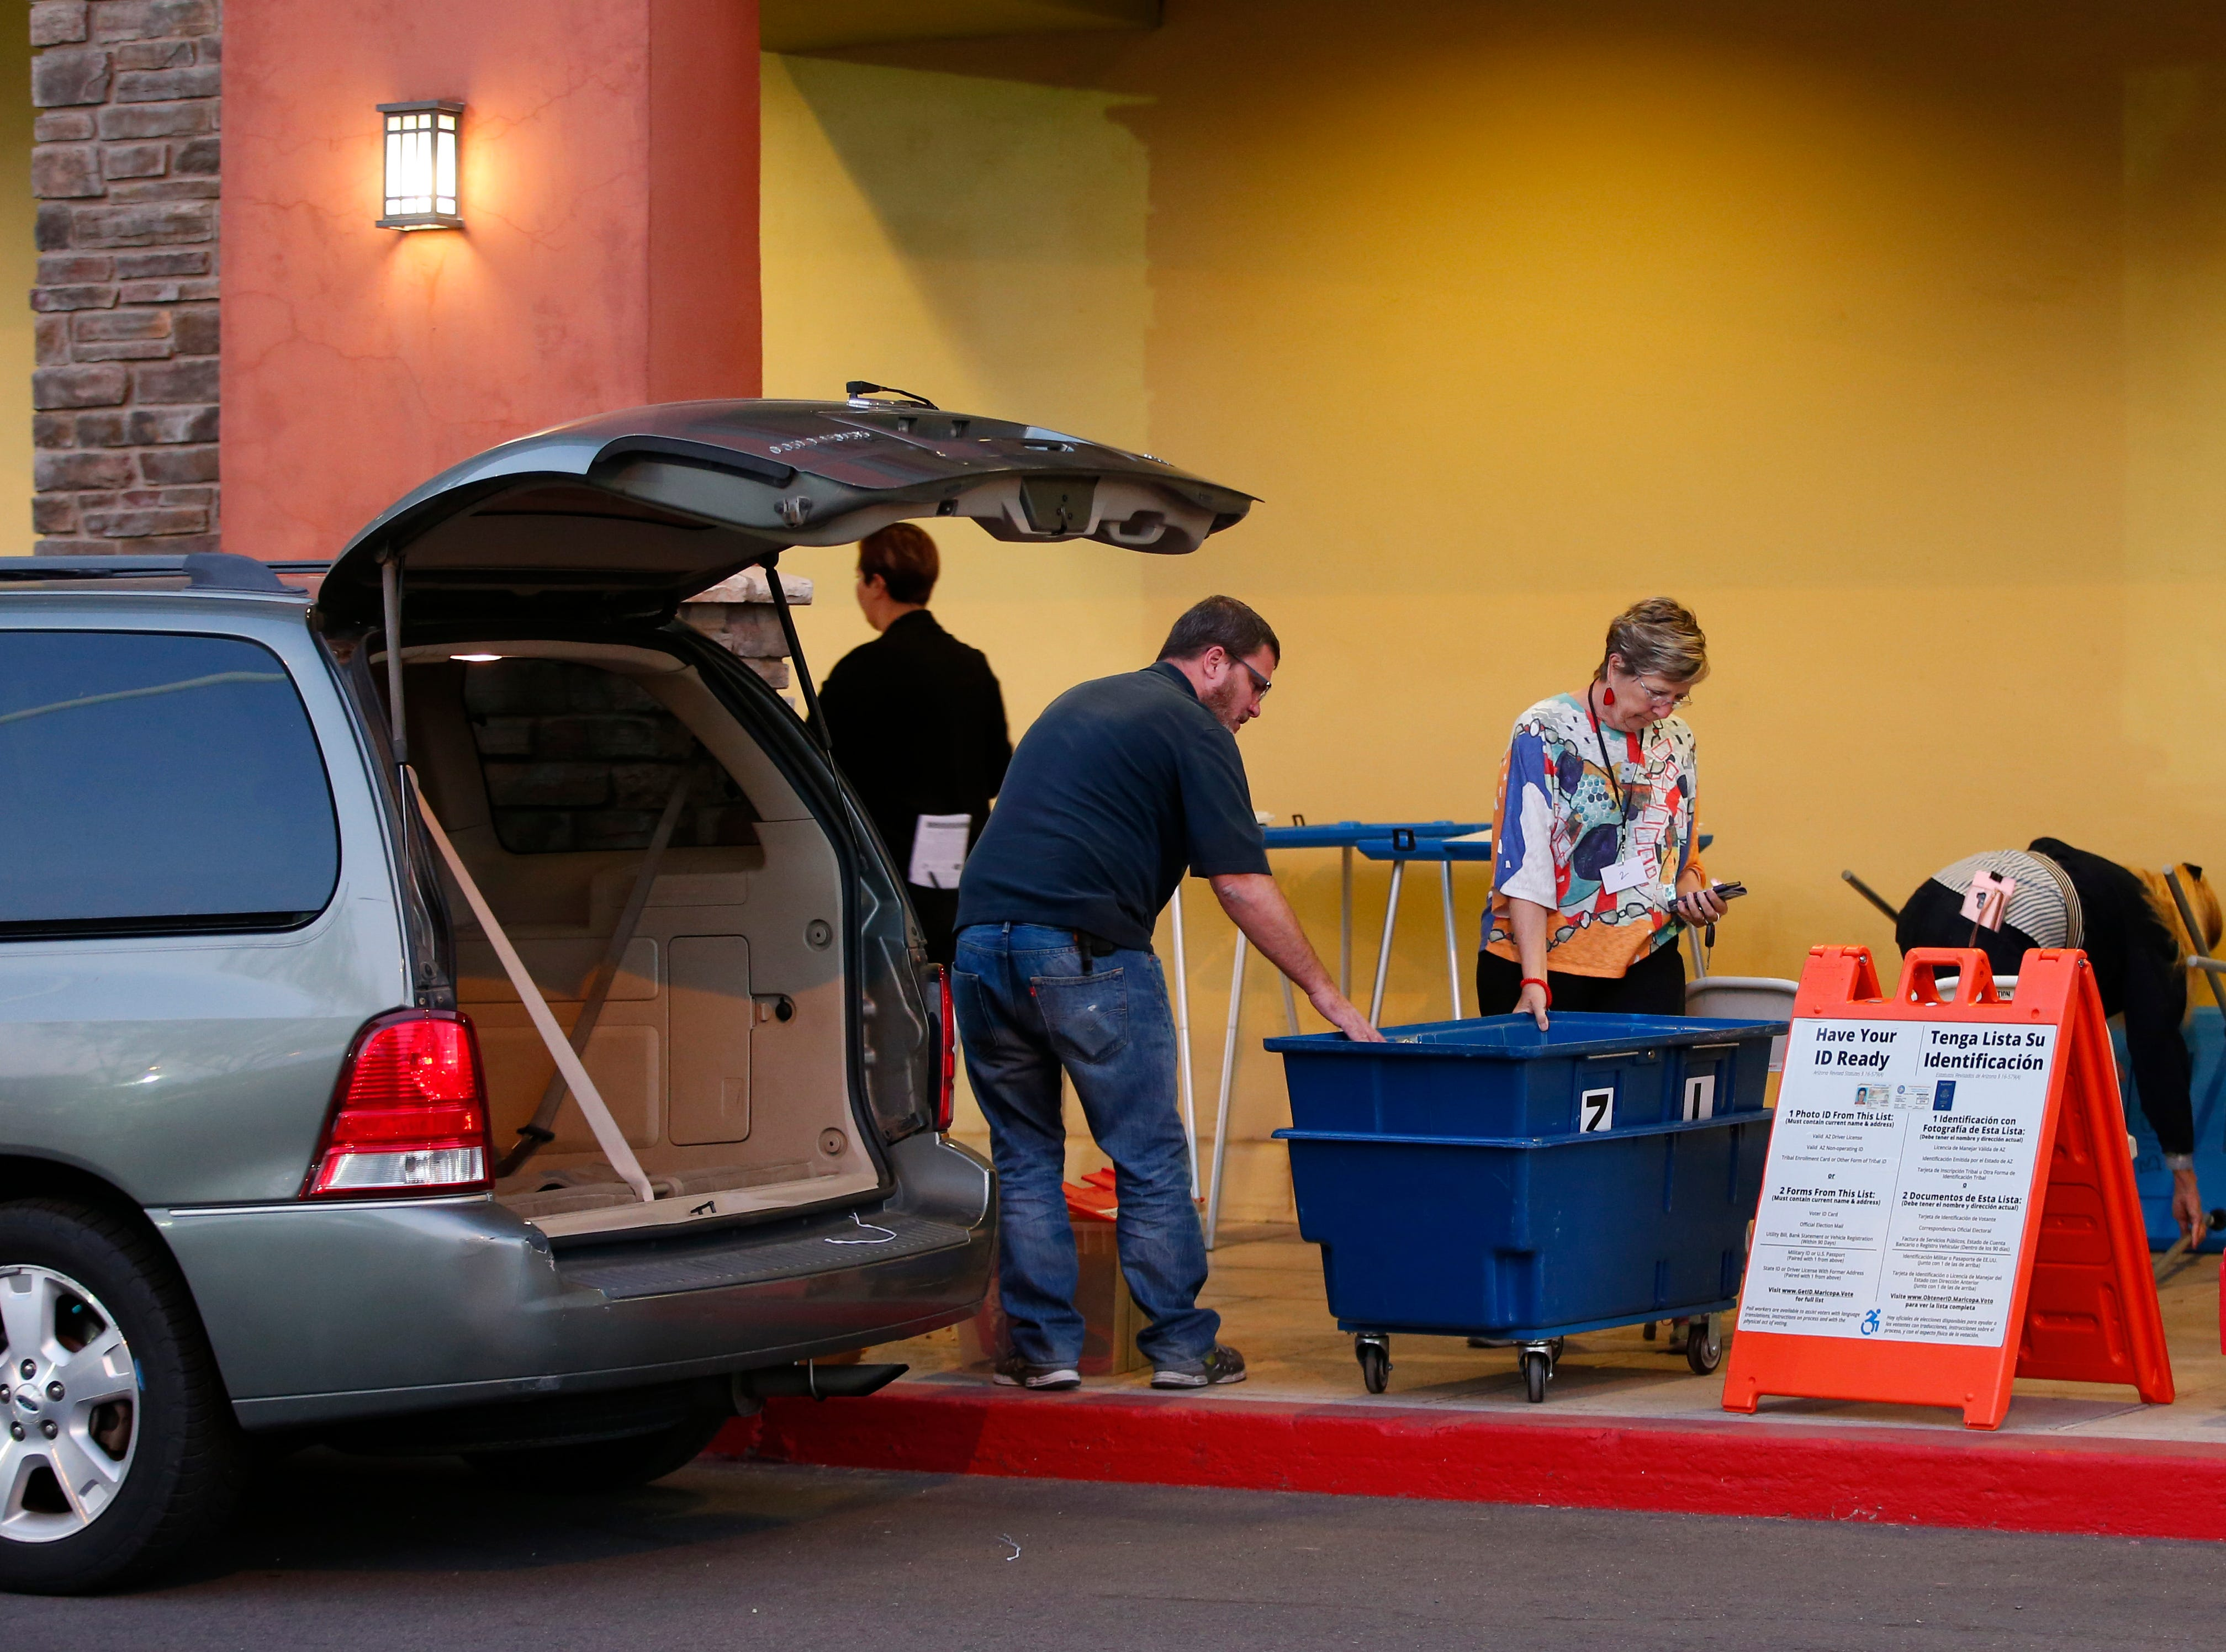 Workers scramble to set up a new polling site after being locked out of the Gila polling site in Chandler due to the tenants' failure to pay rent, Nov. 6, 2018.